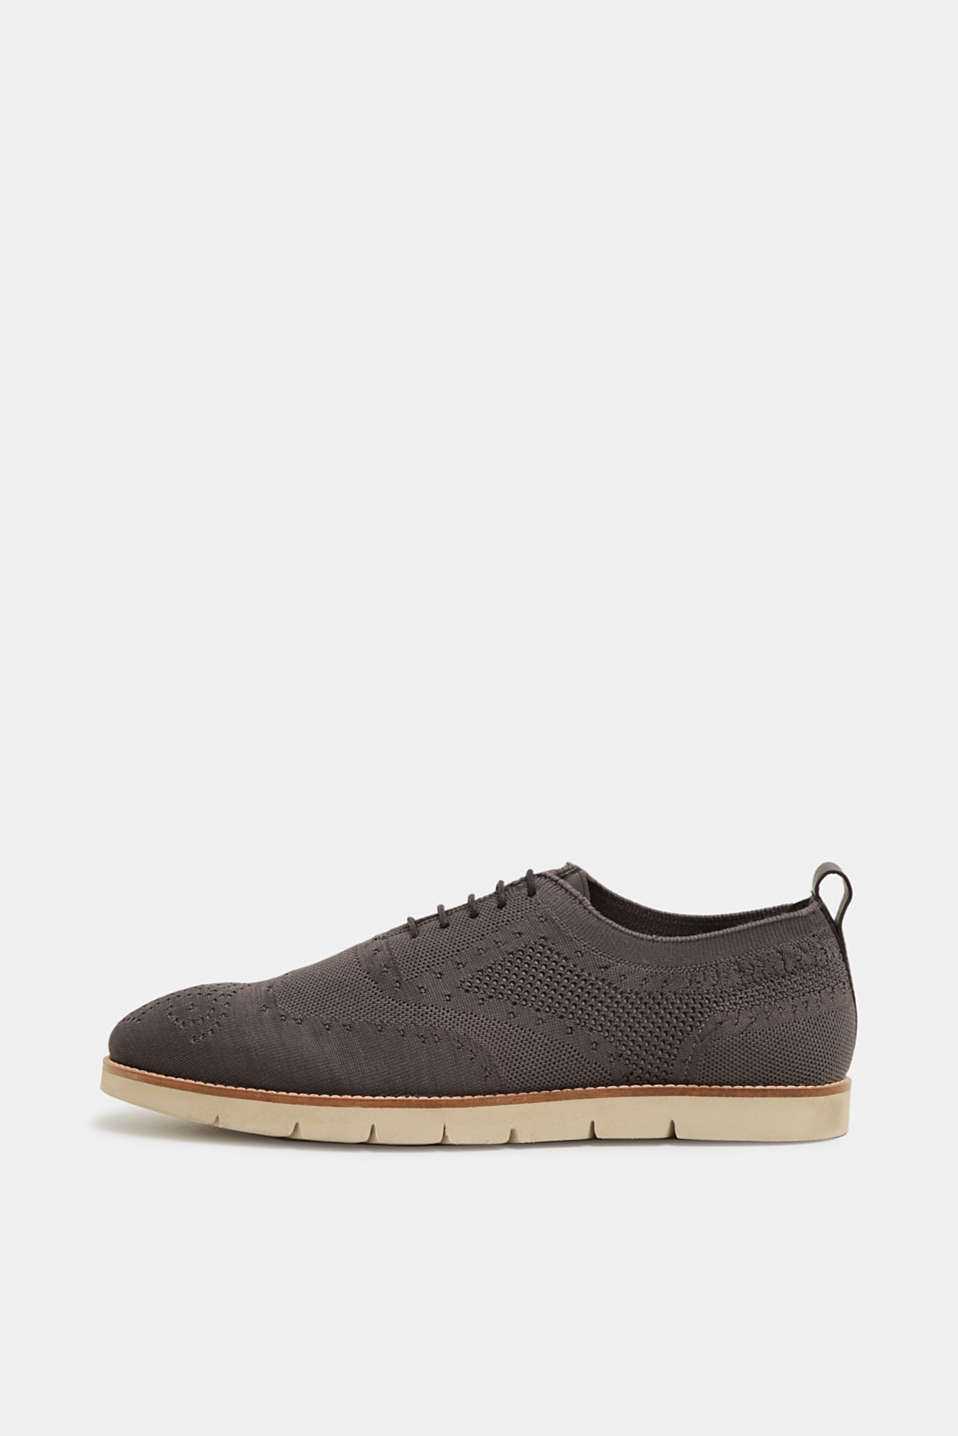 Esprit - Knitted brogues with a Budapest-style intarsia